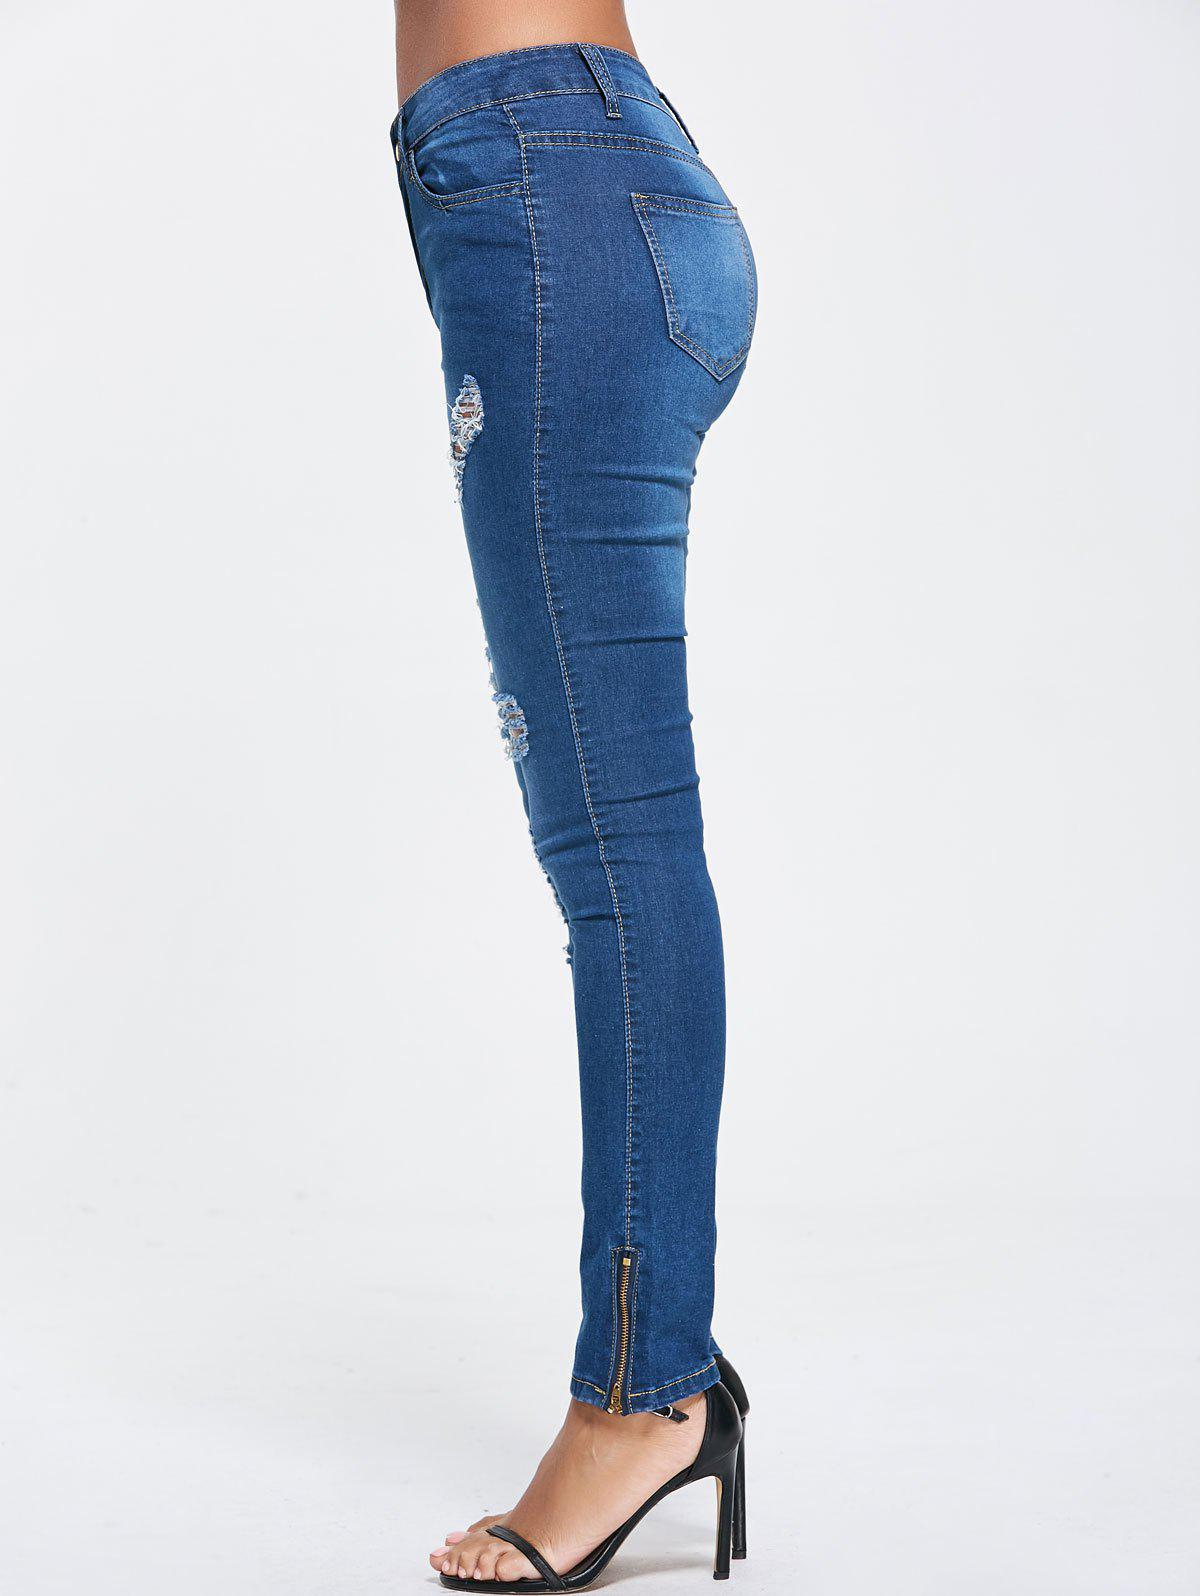 Skinny High Waist  Ripped Jeans - BLUE XL